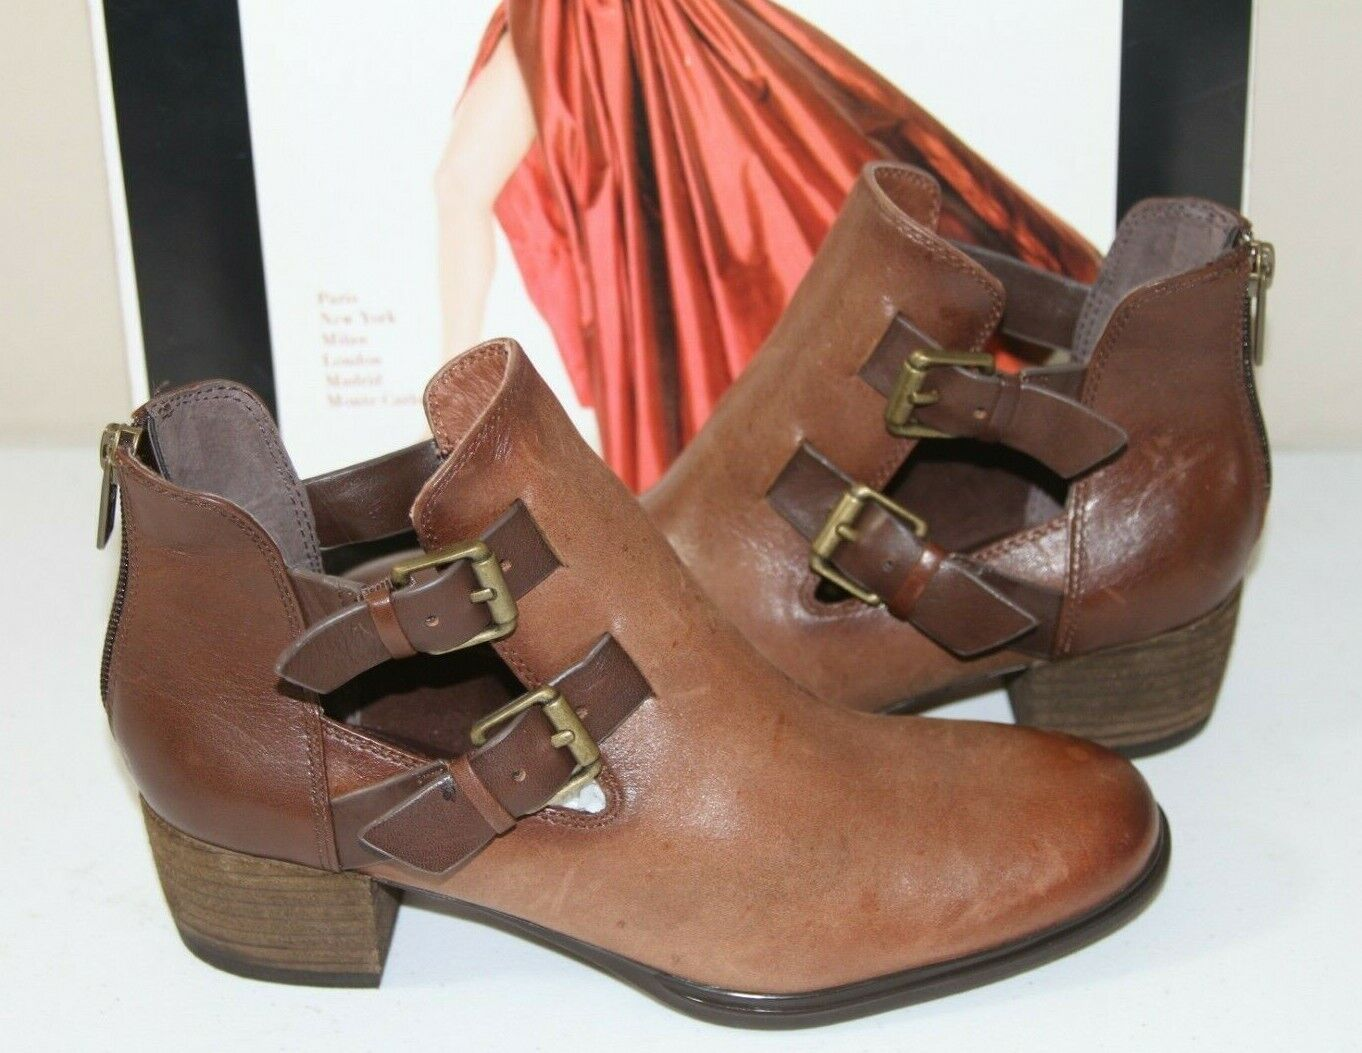 83 ISOLA DARNEL HAVANA BROWN LEATHER ANKLE BOOTS    SZ 6.5  NEW